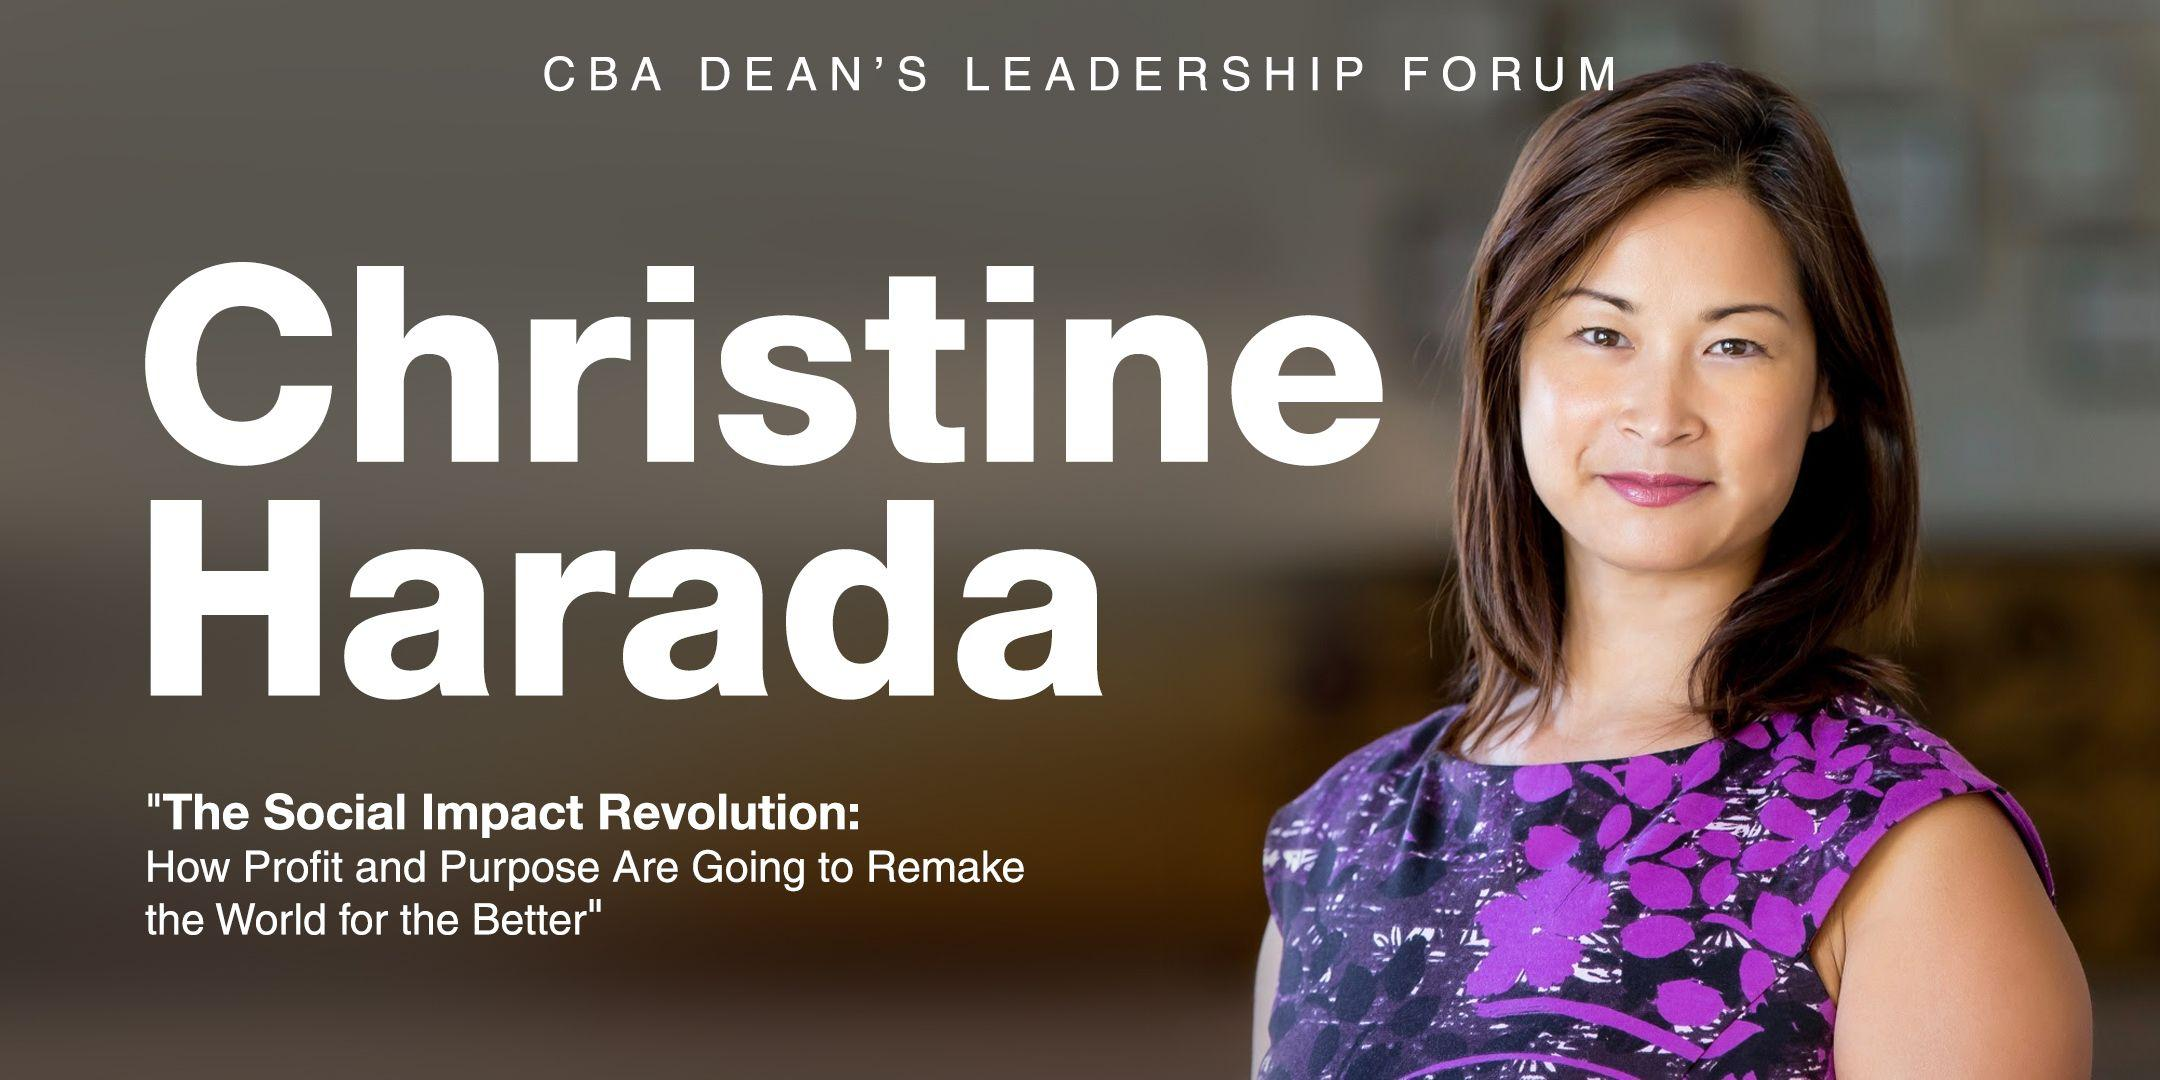 Cba Dean S Leadership Forum An Evening With Christine Harada 26 Feb 2020